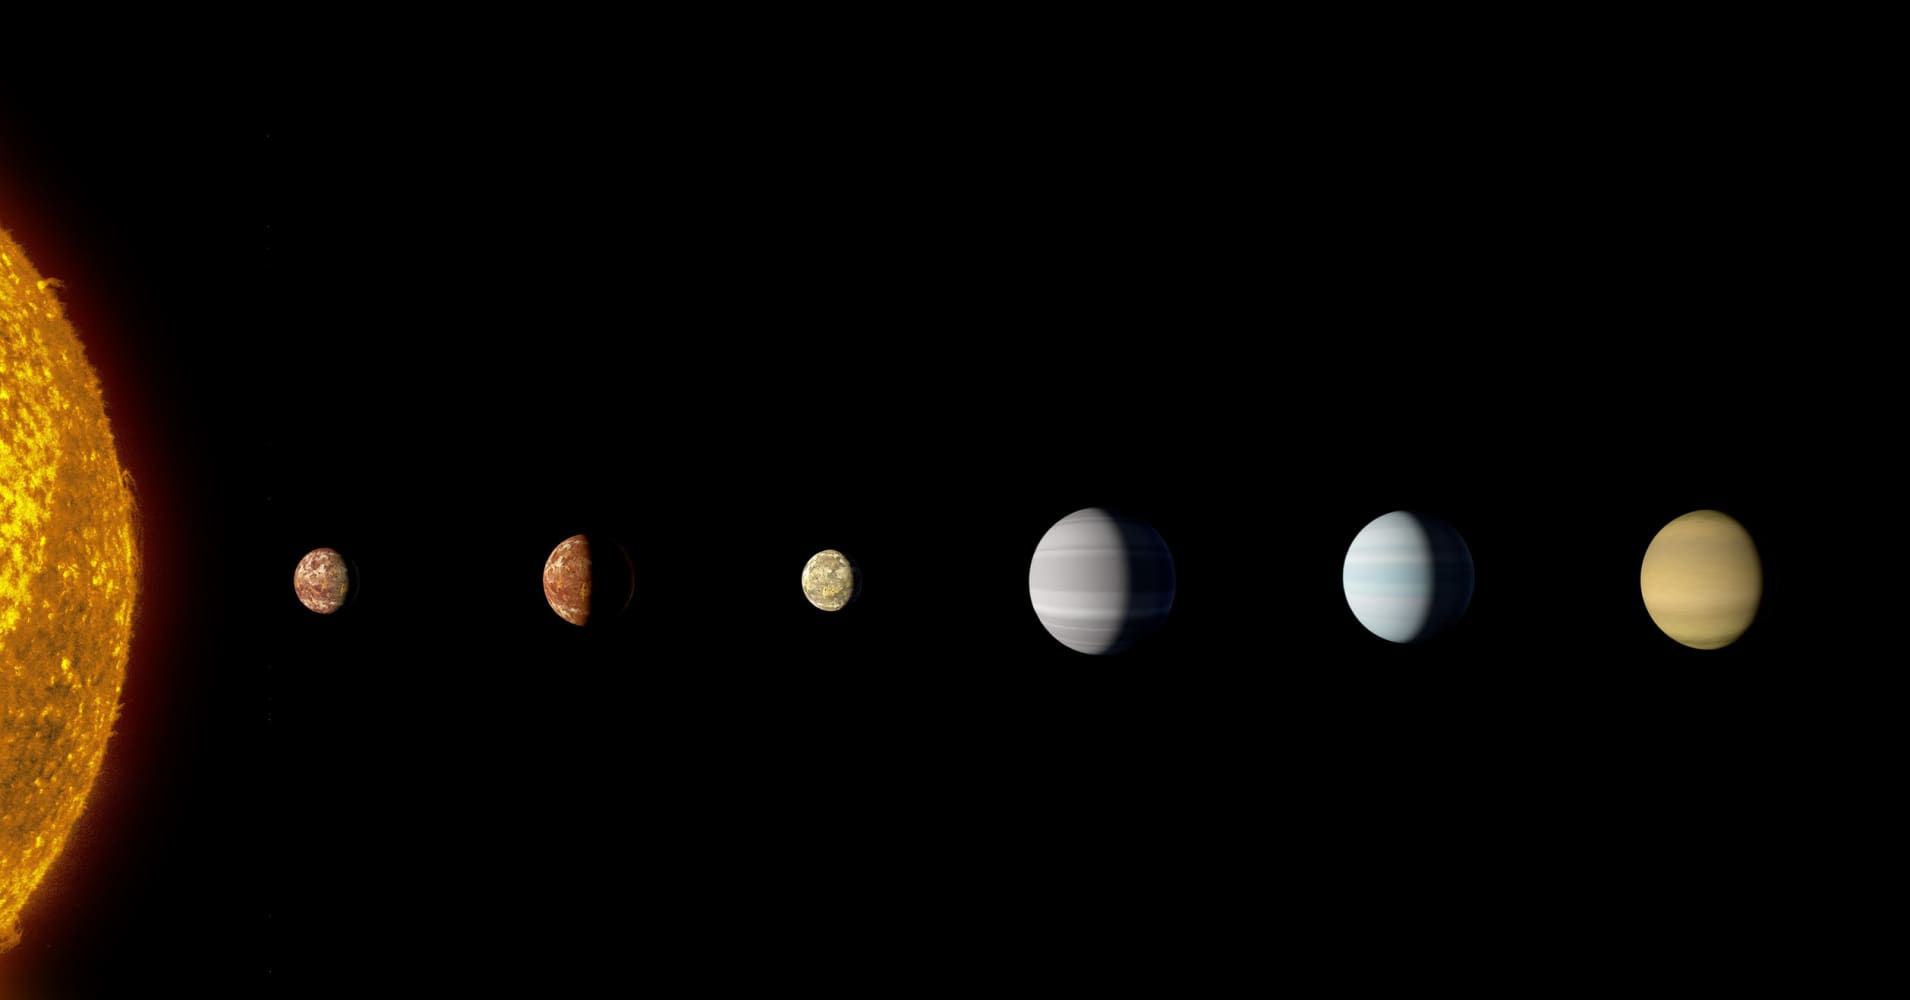 The Kepler-90 system is the only other known system to have eight planets, like our solar system including Earth.